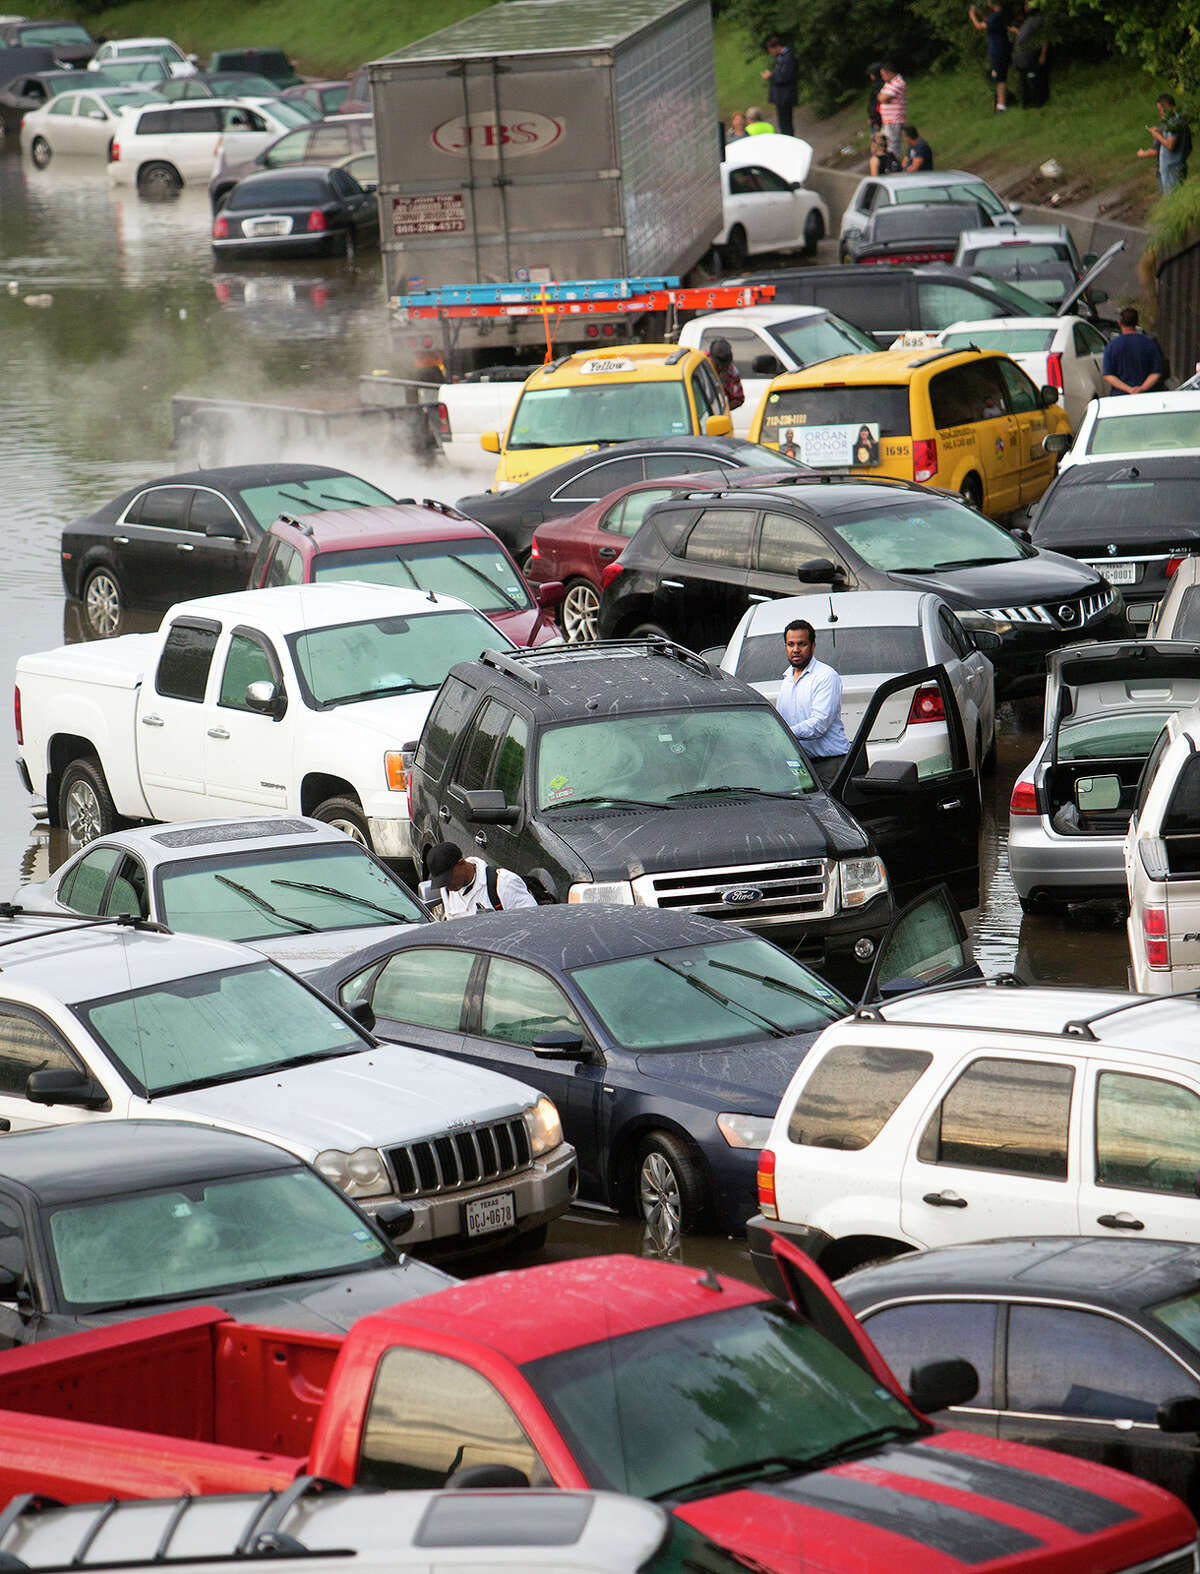 Motorists are stranded along I-45 along North Main in Houston after storms flooded the area, Tuesday, May 26, 2015. Overnight heavy rains caused flooding closing some portions of major highways in the Houston area. (Cody Duty/Houston Chronicle via AP) ORG XMIT: TXHOU101